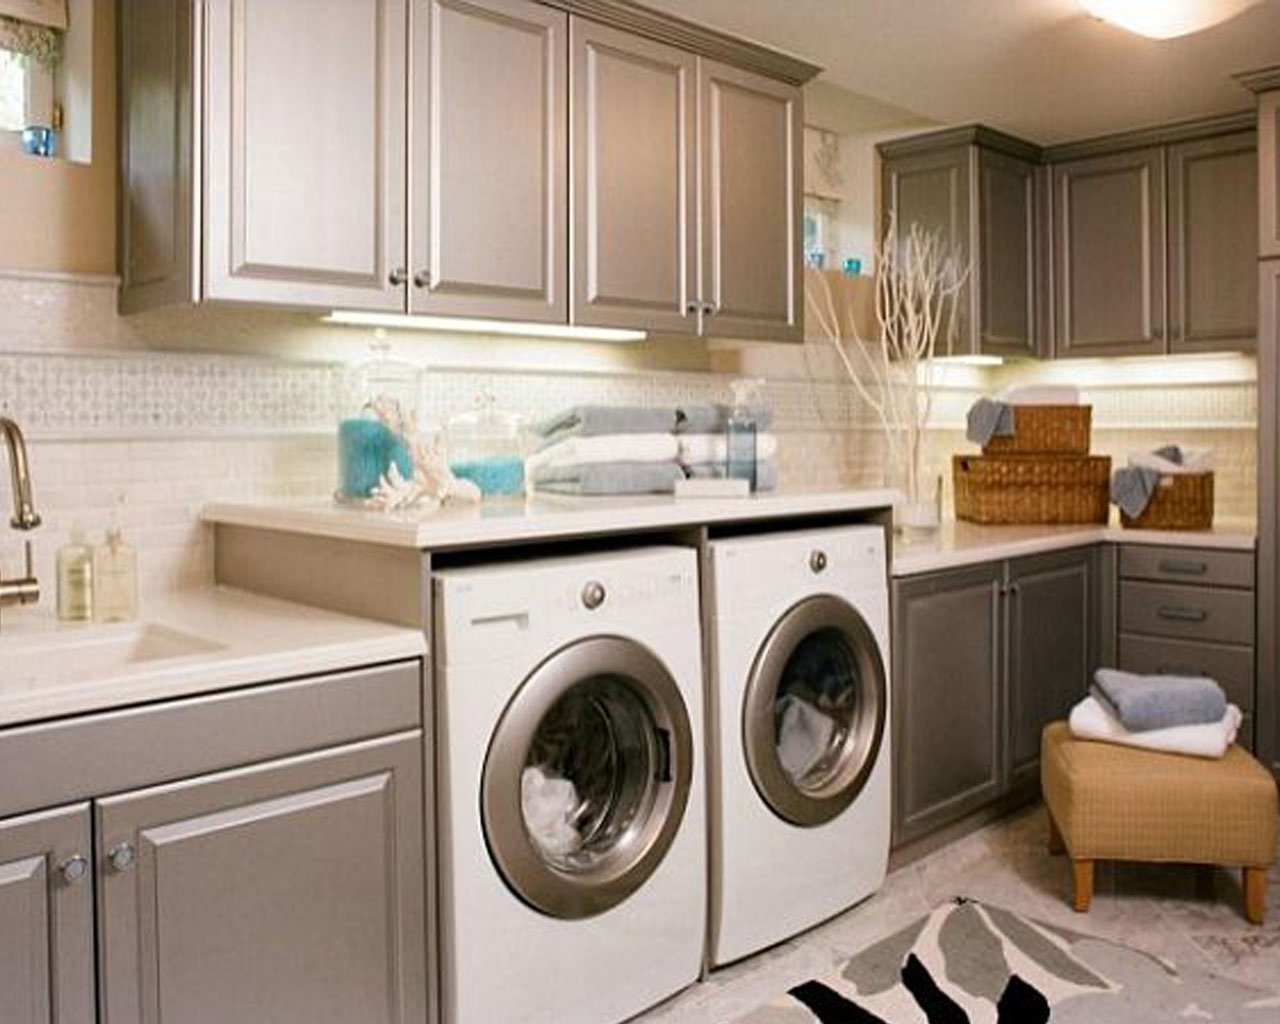 Kitchen Cabinet Design With Washing Machine